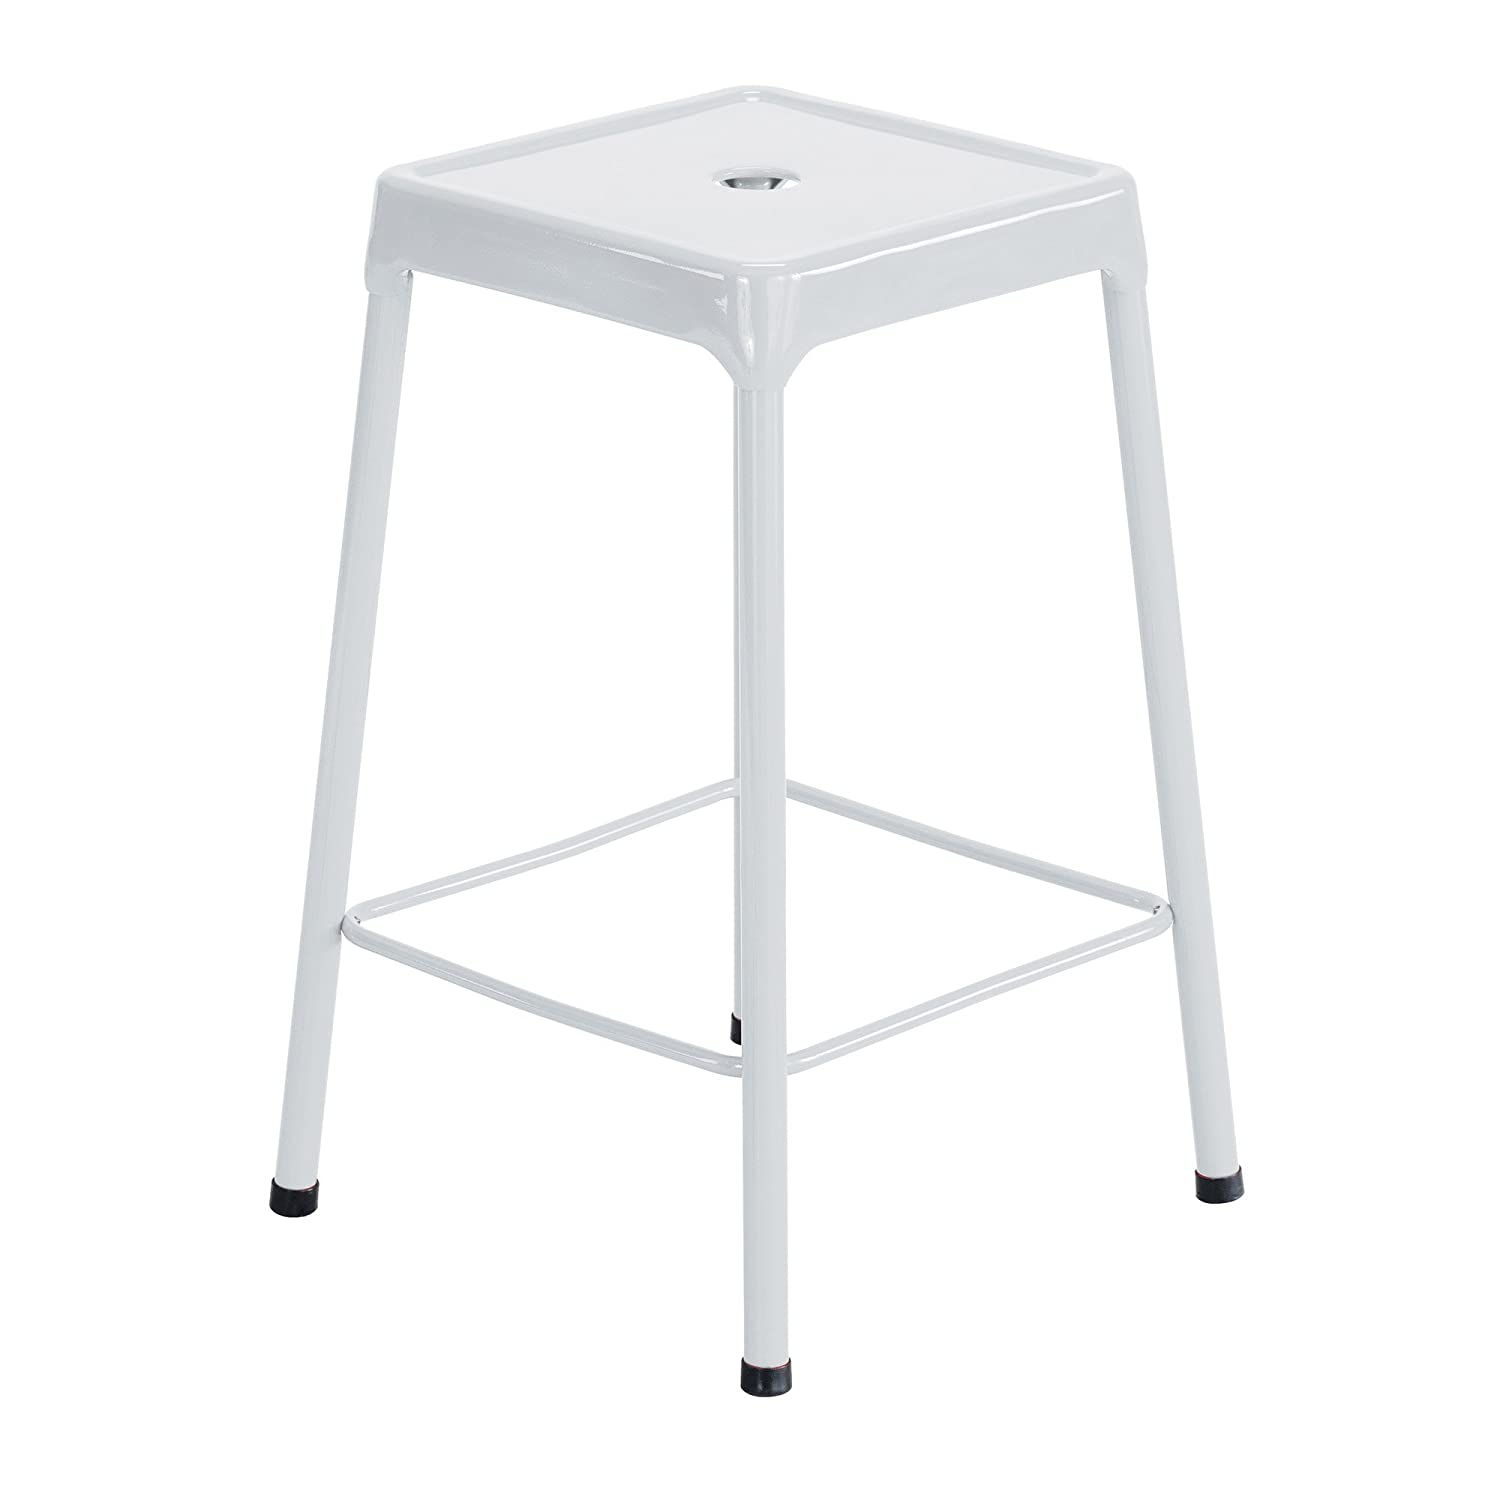 Sensational Safco Products Steel Stool Standard Height White Pdpeps Interior Chair Design Pdpepsorg